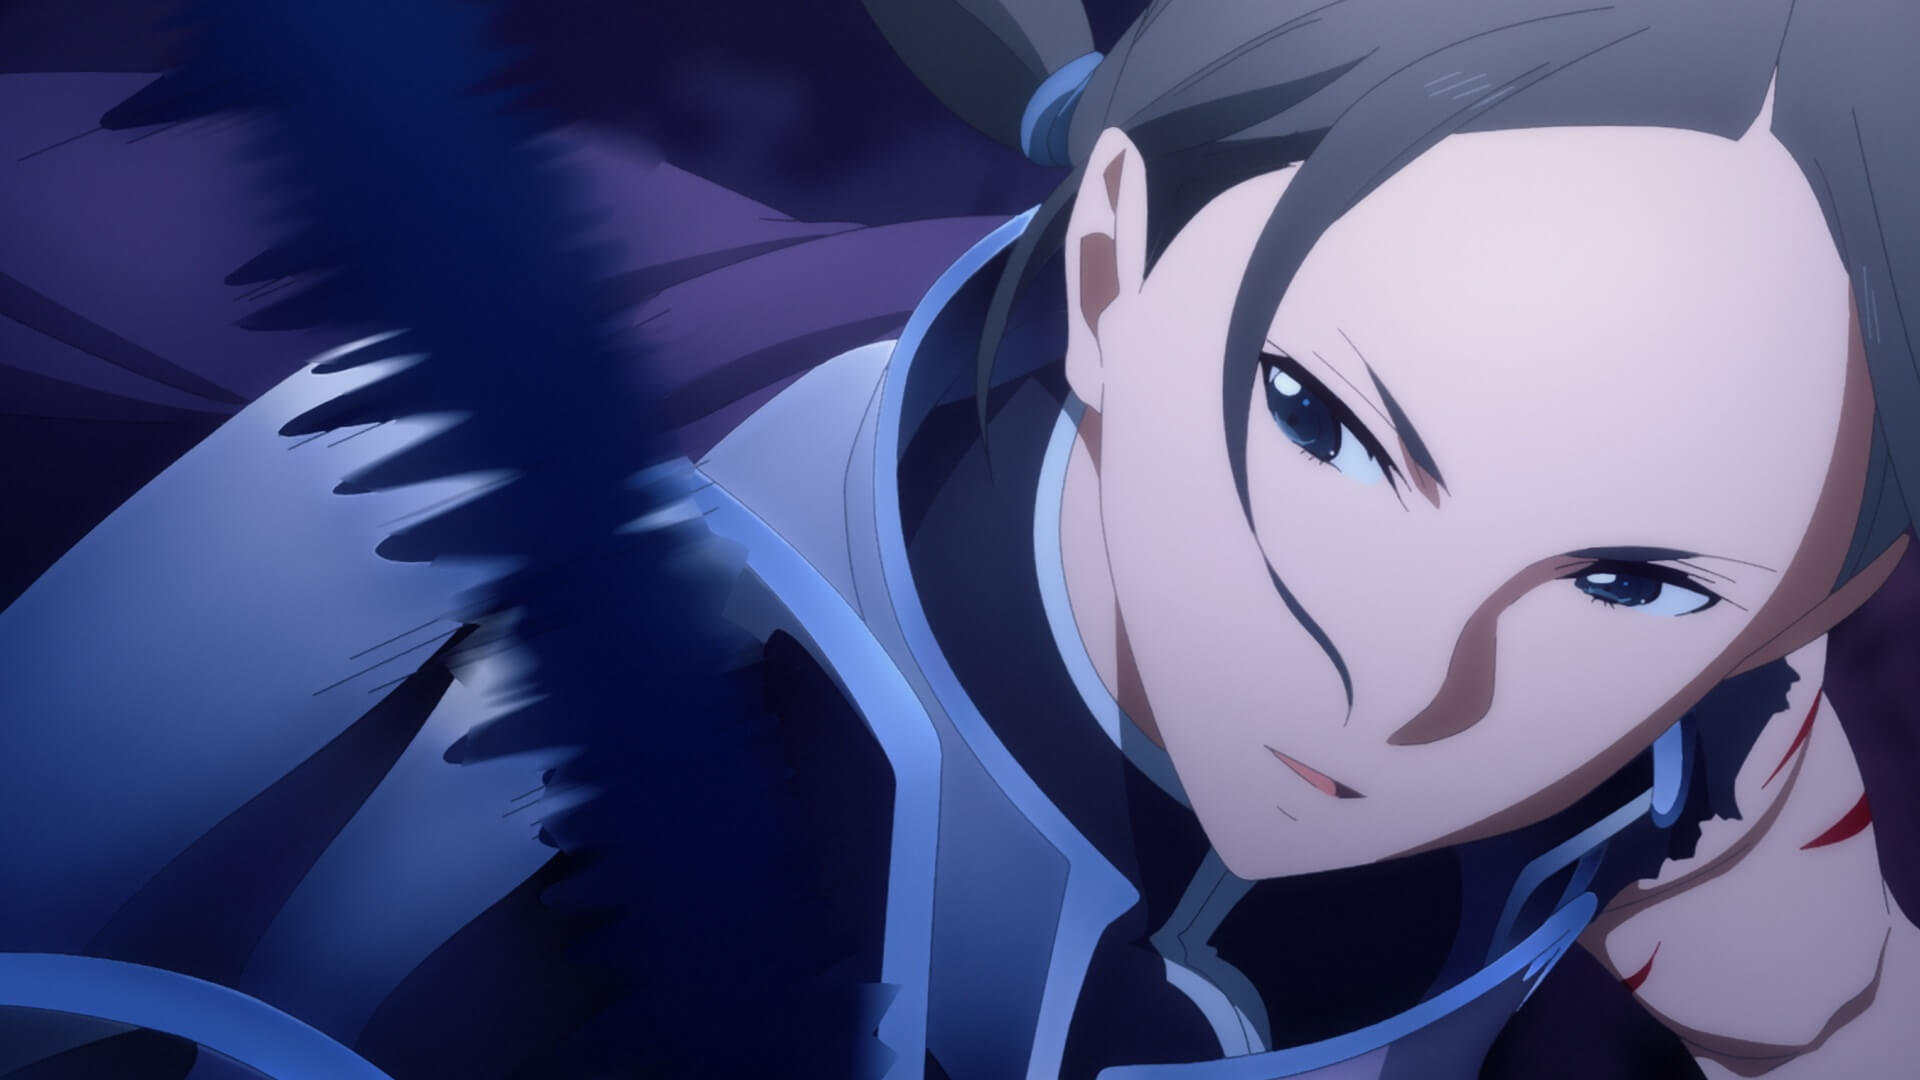 sao アリシ ゼーション wou